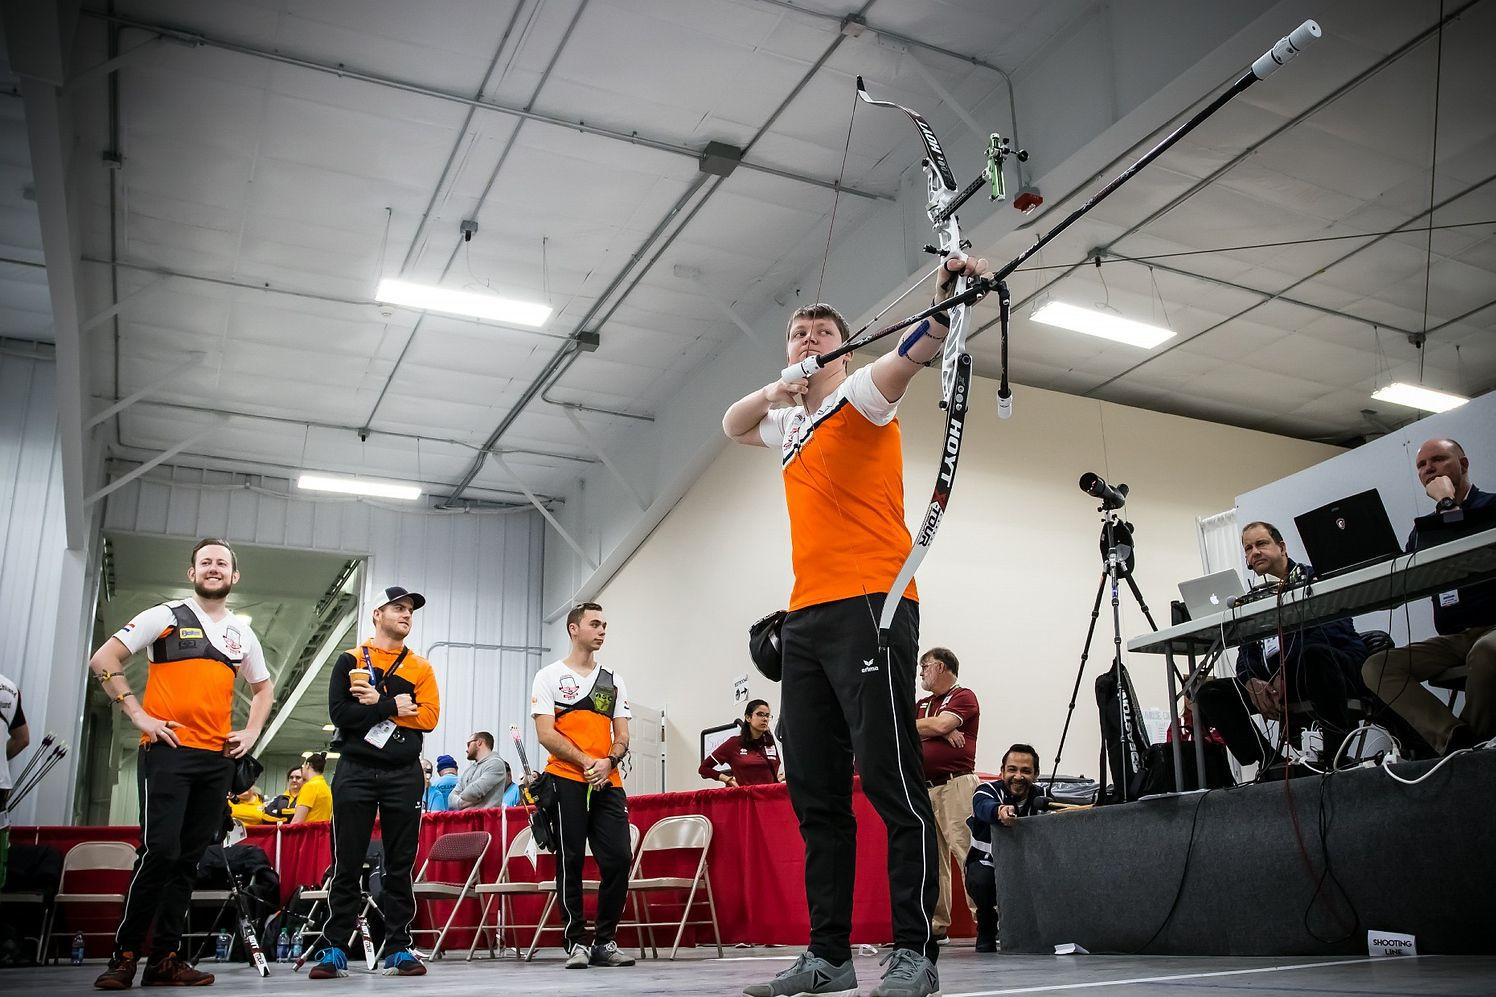 Favourites Netherlands through to men's recurve final at World Archery Indoor Championships